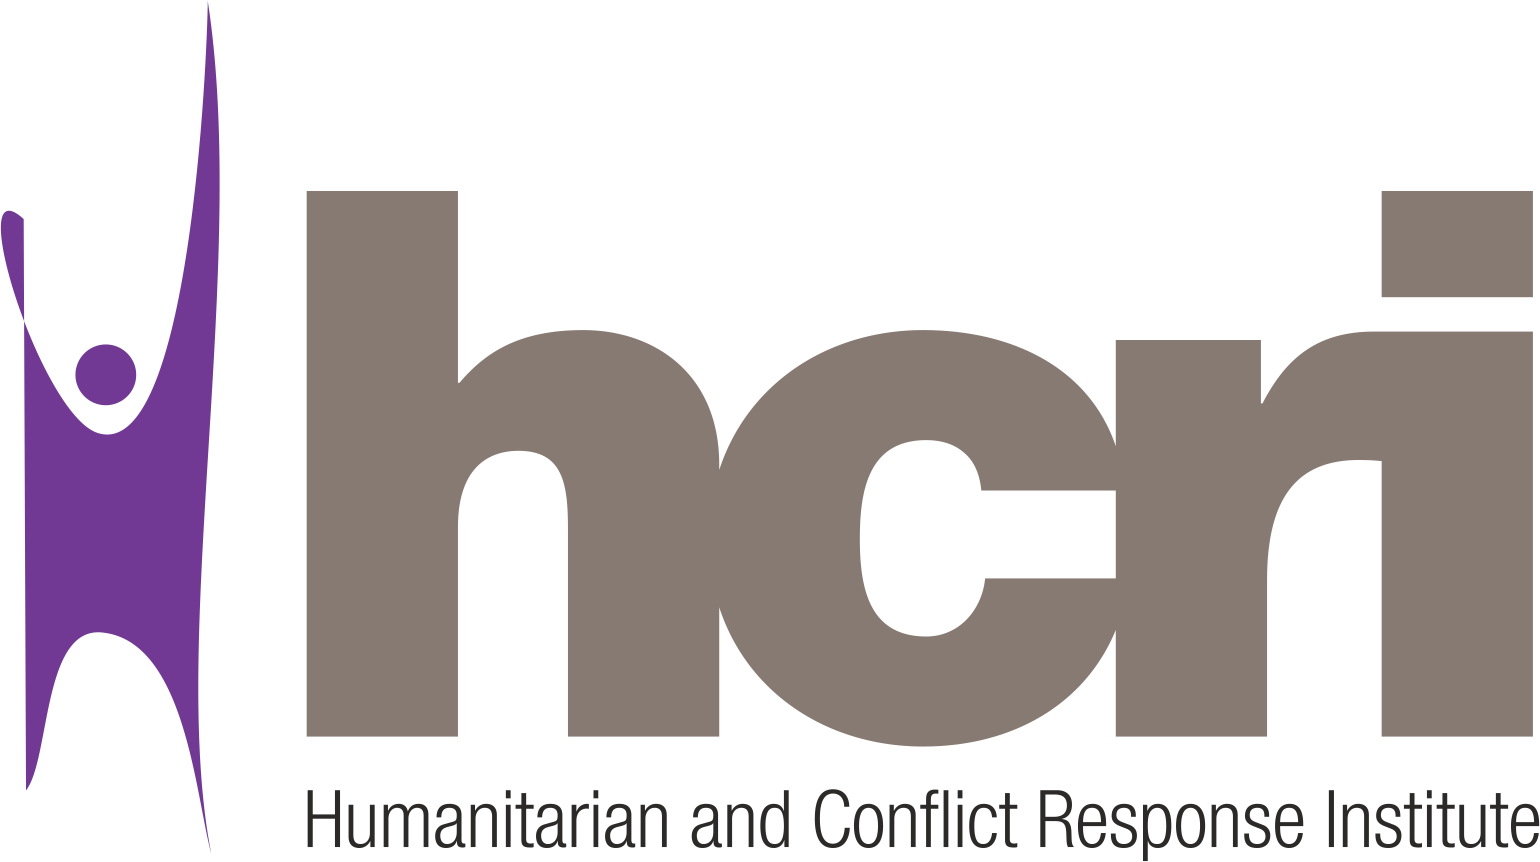 Humanitarian and Conflict Response Institute